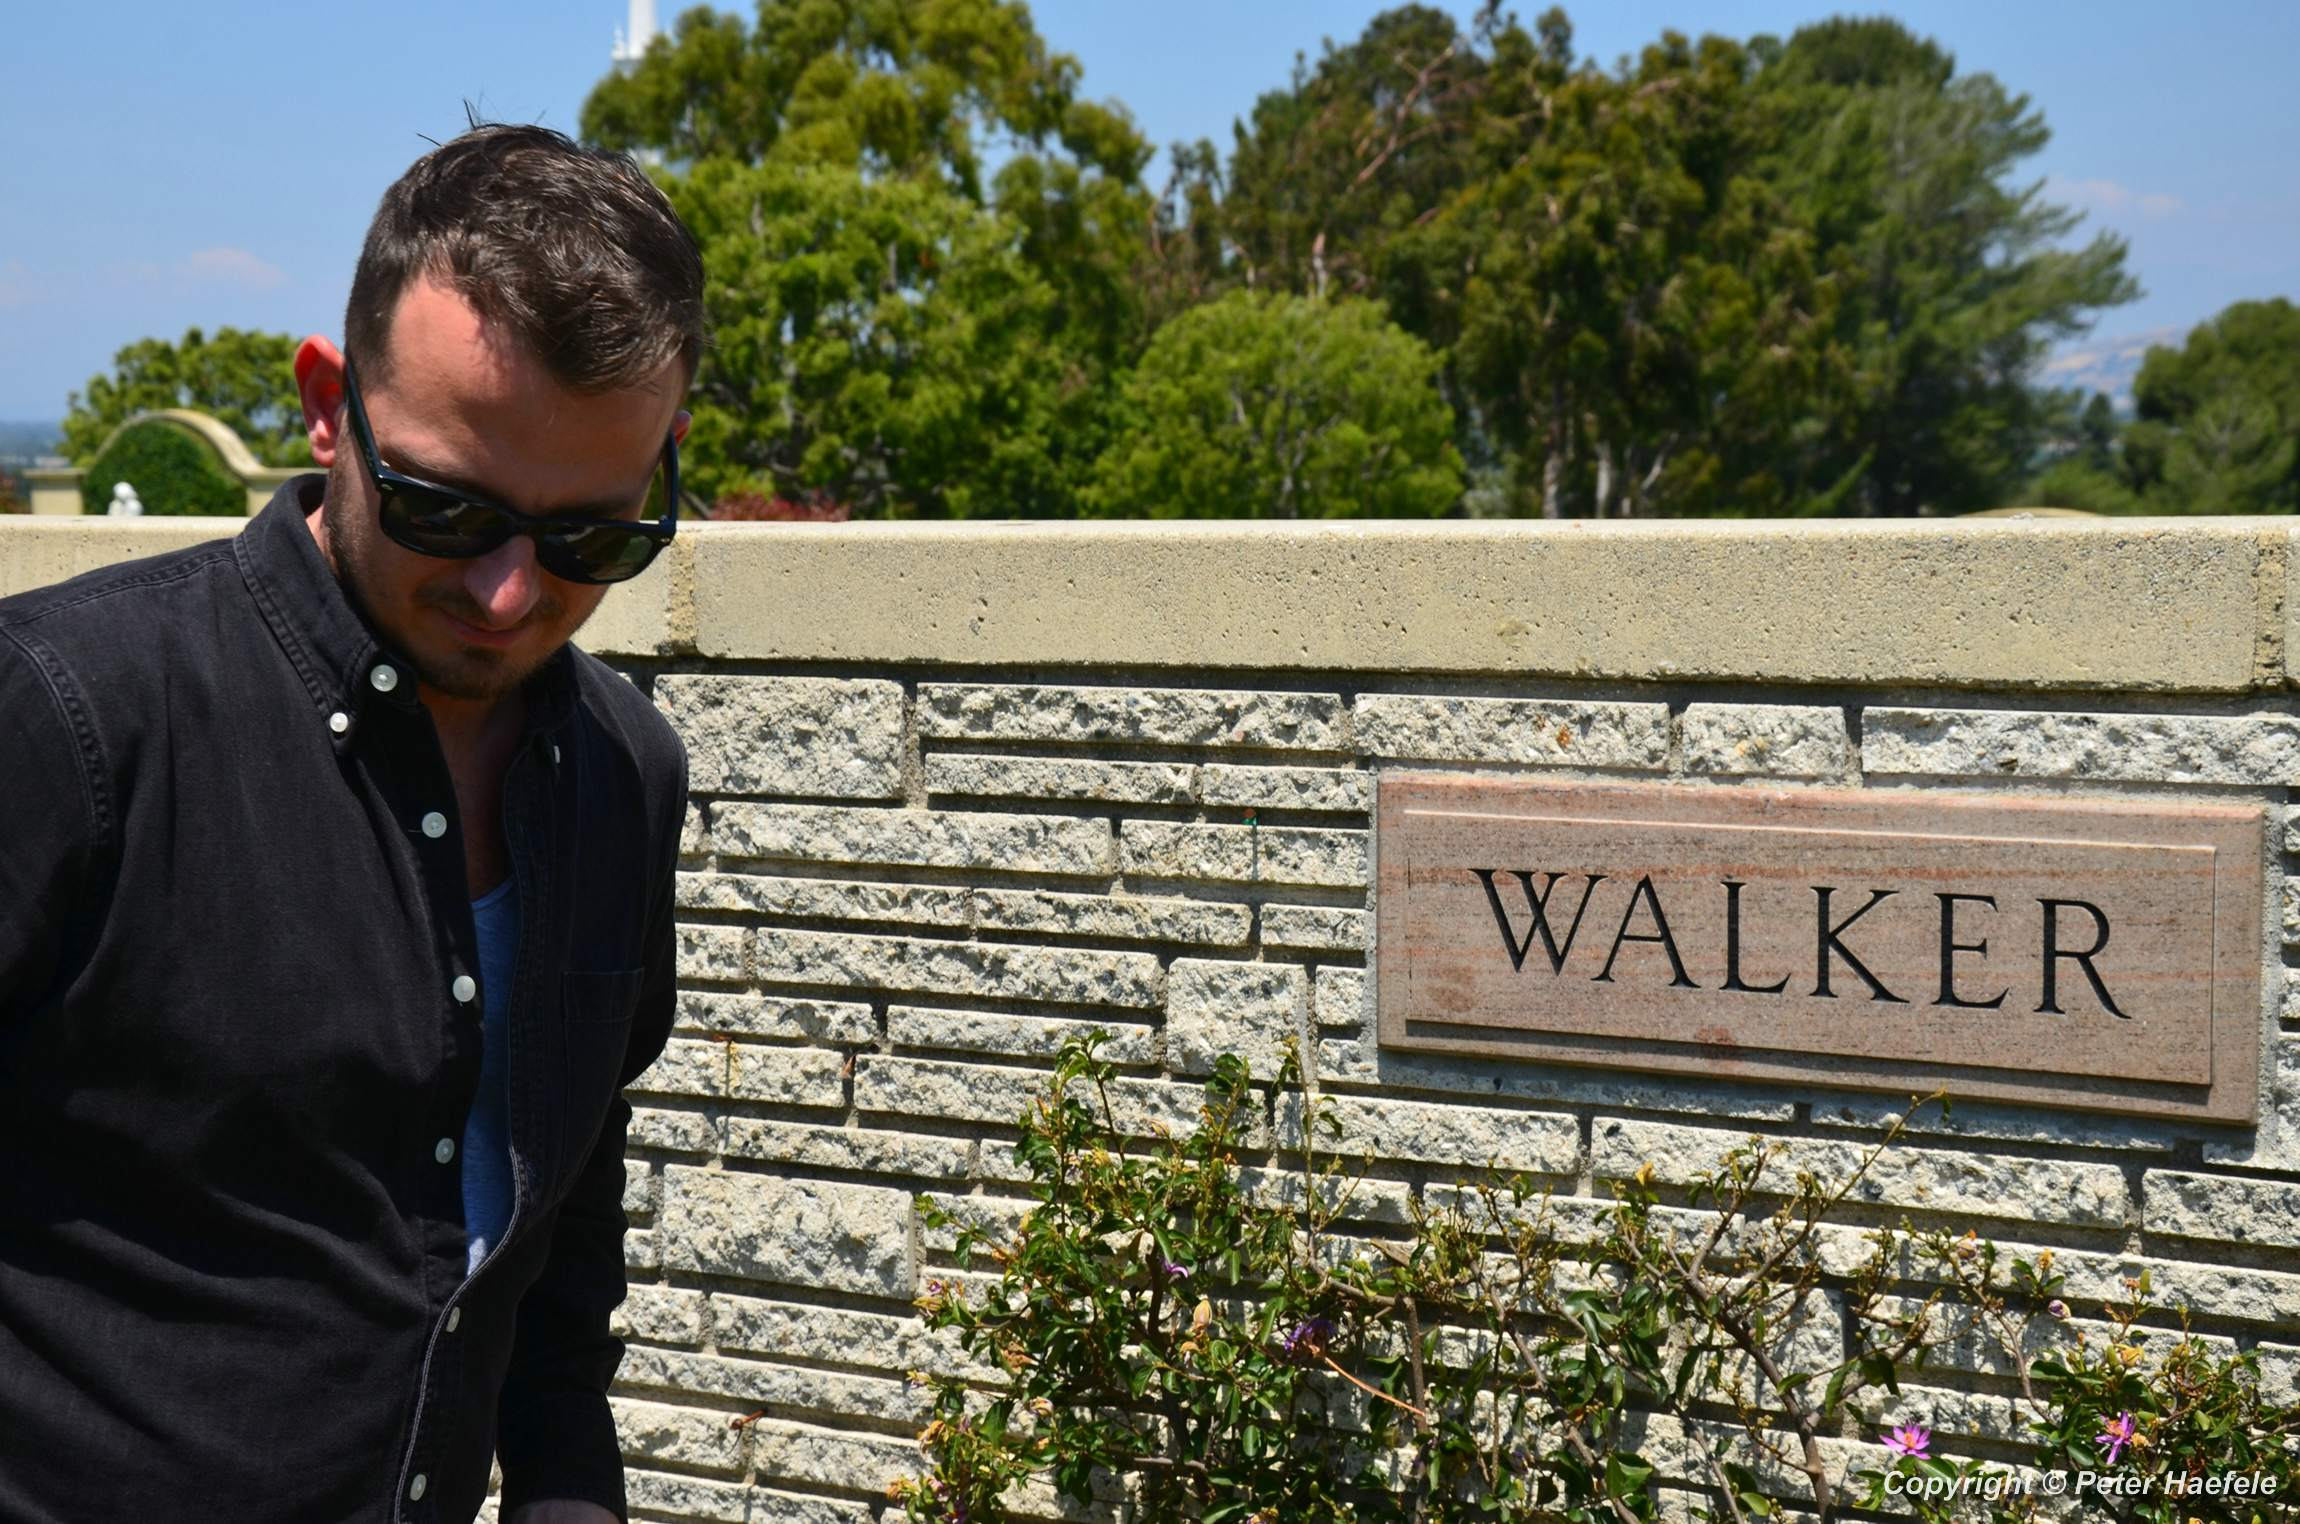 Grab von Paul Walker - Forest Lawn Hollywood Hills - © Peter Haefele Fotografie